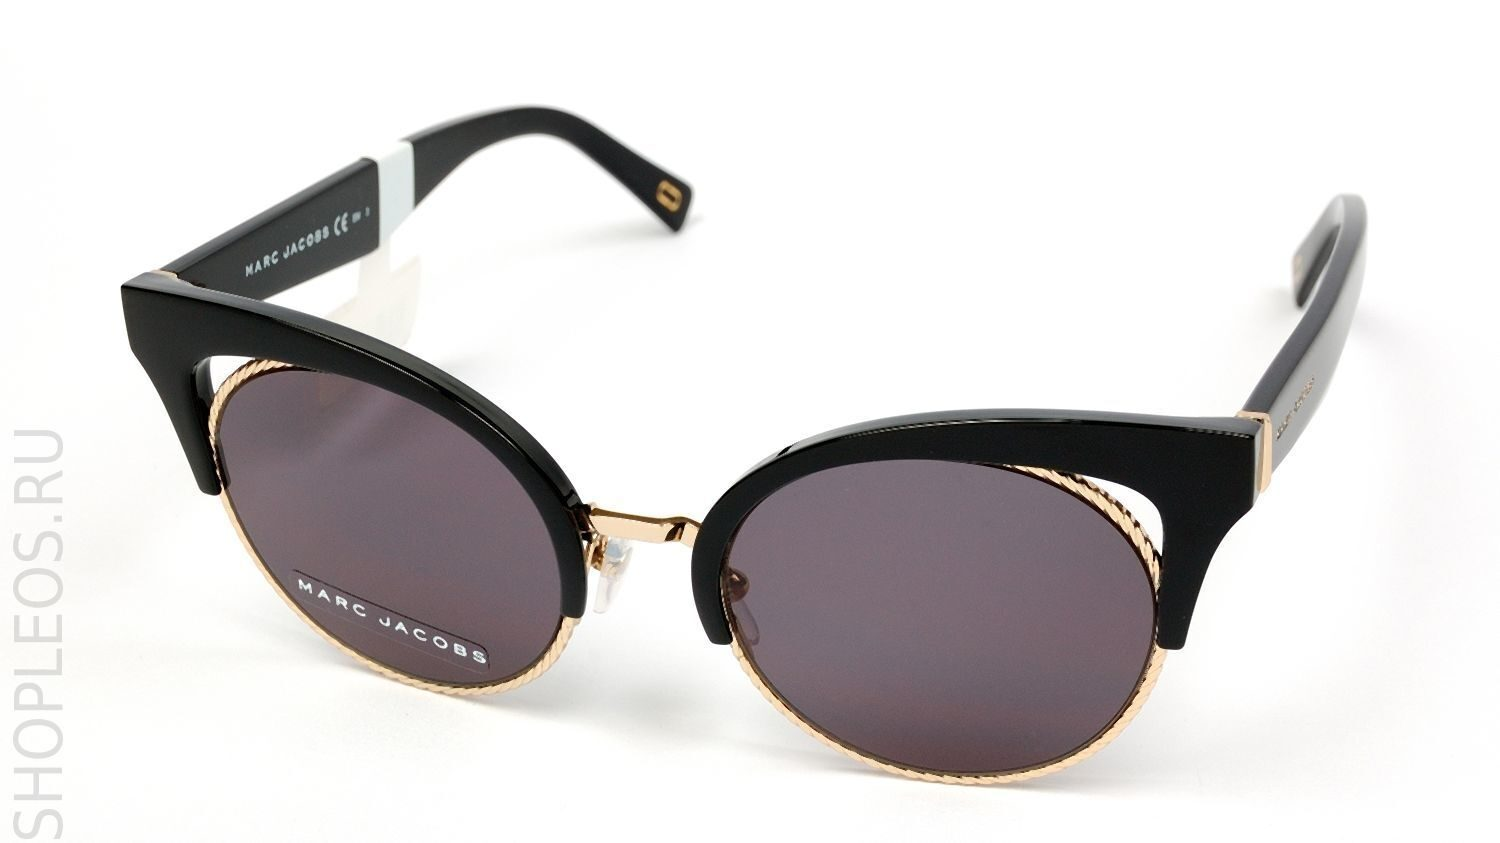 MARC JACOBS WOMAN MARC 215/S 807